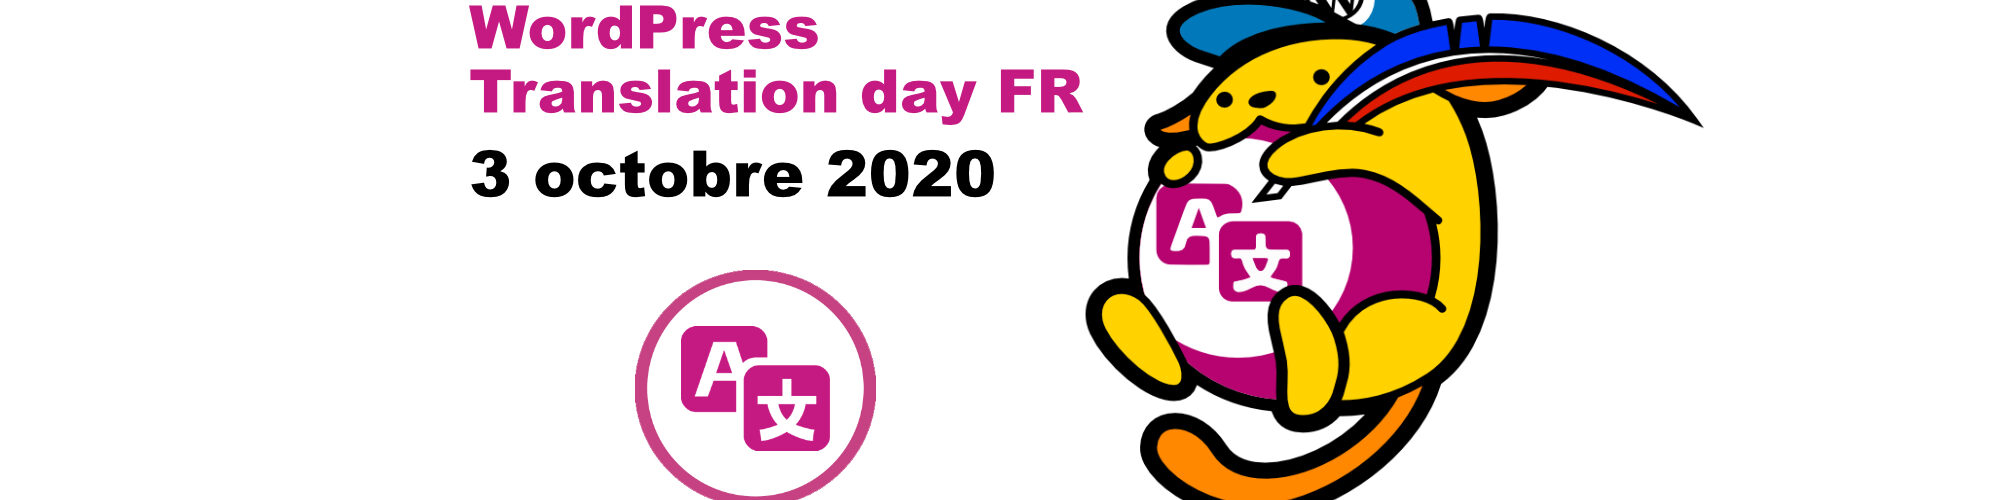 Rendez-vous le 3 octobre 2020 pour le WordPress translation day FR